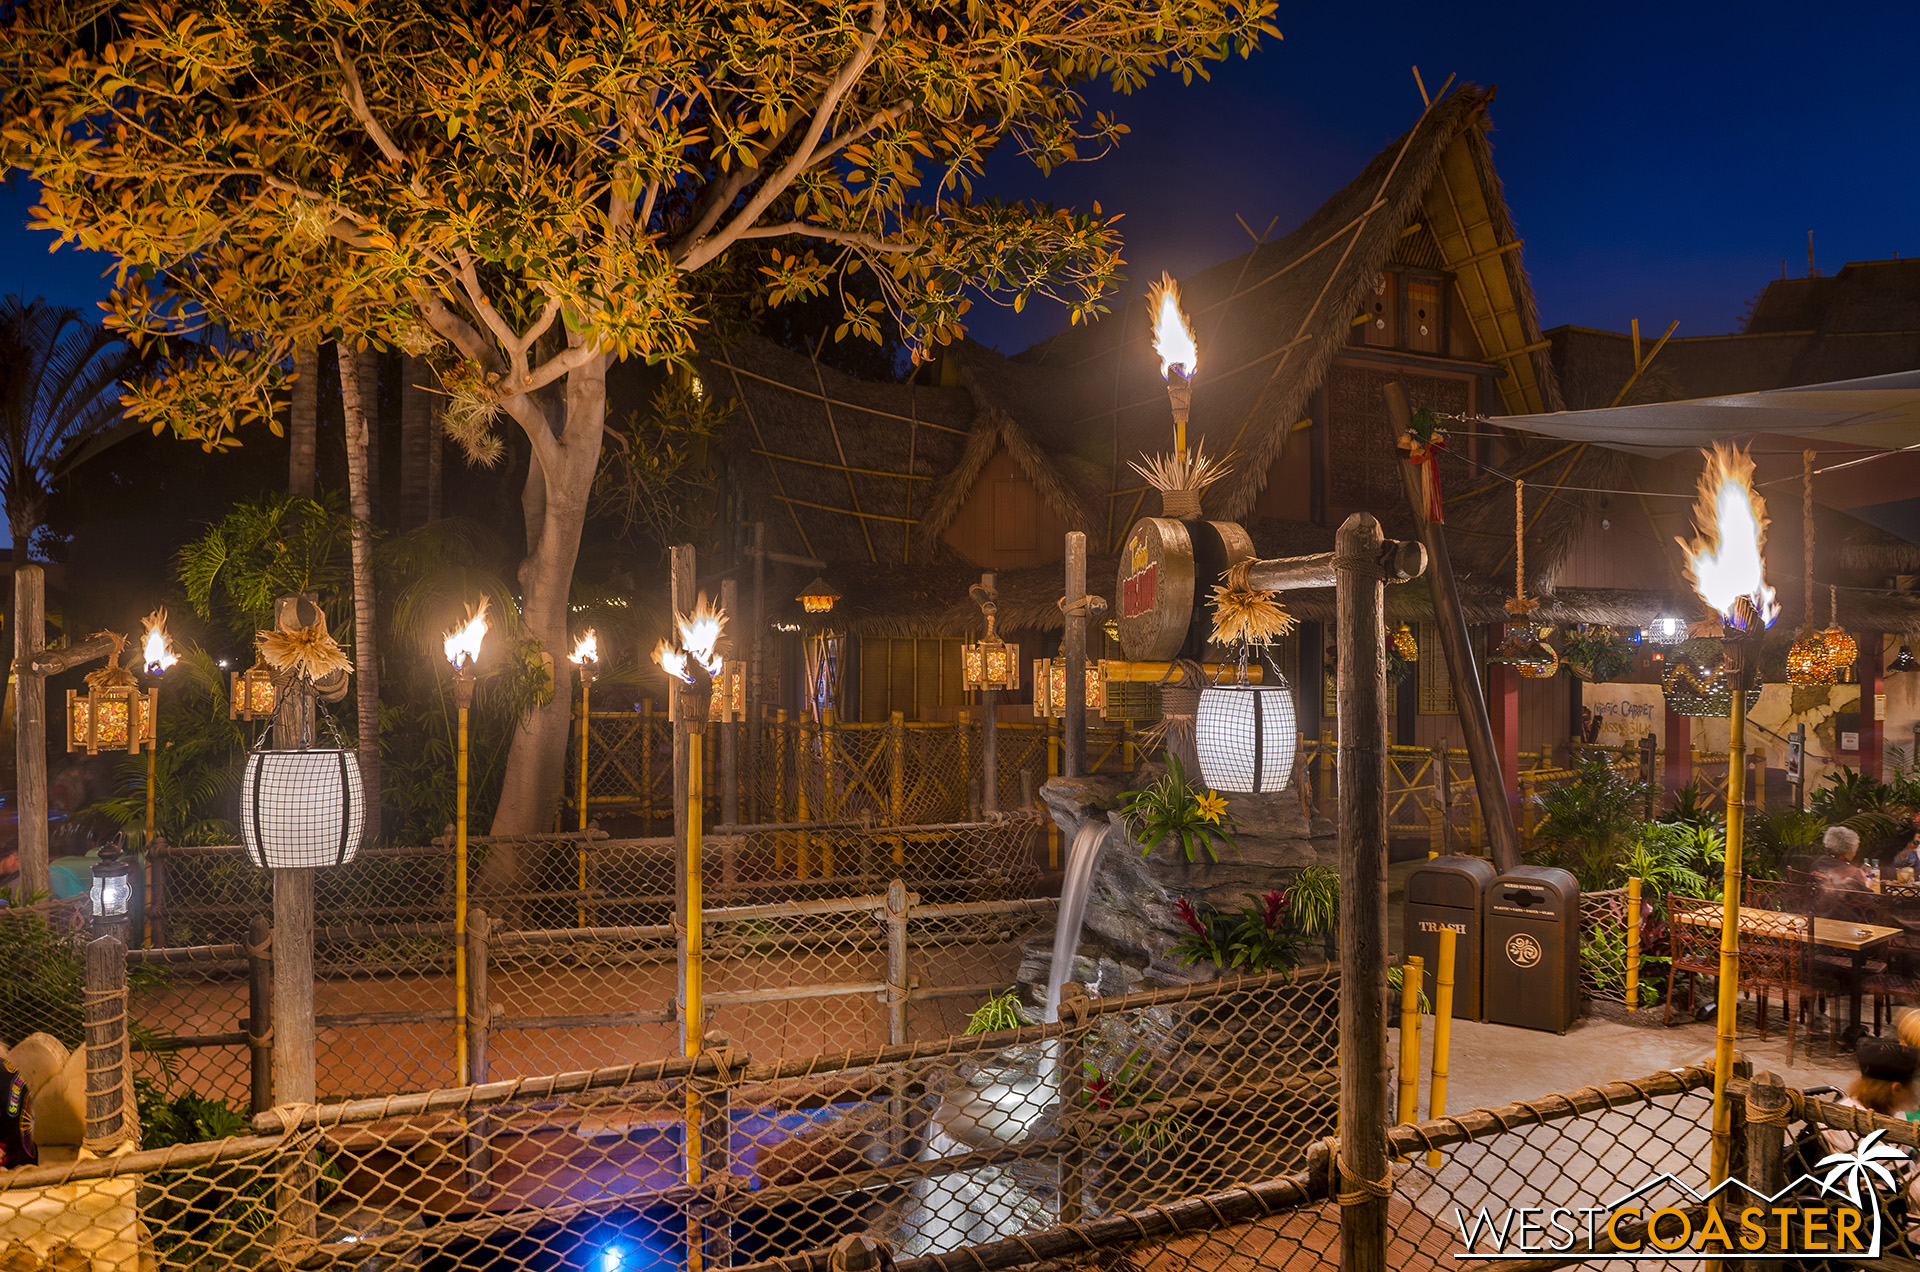 The Enchanted Tiki Room flanks one side of the Tropical Hideaway.